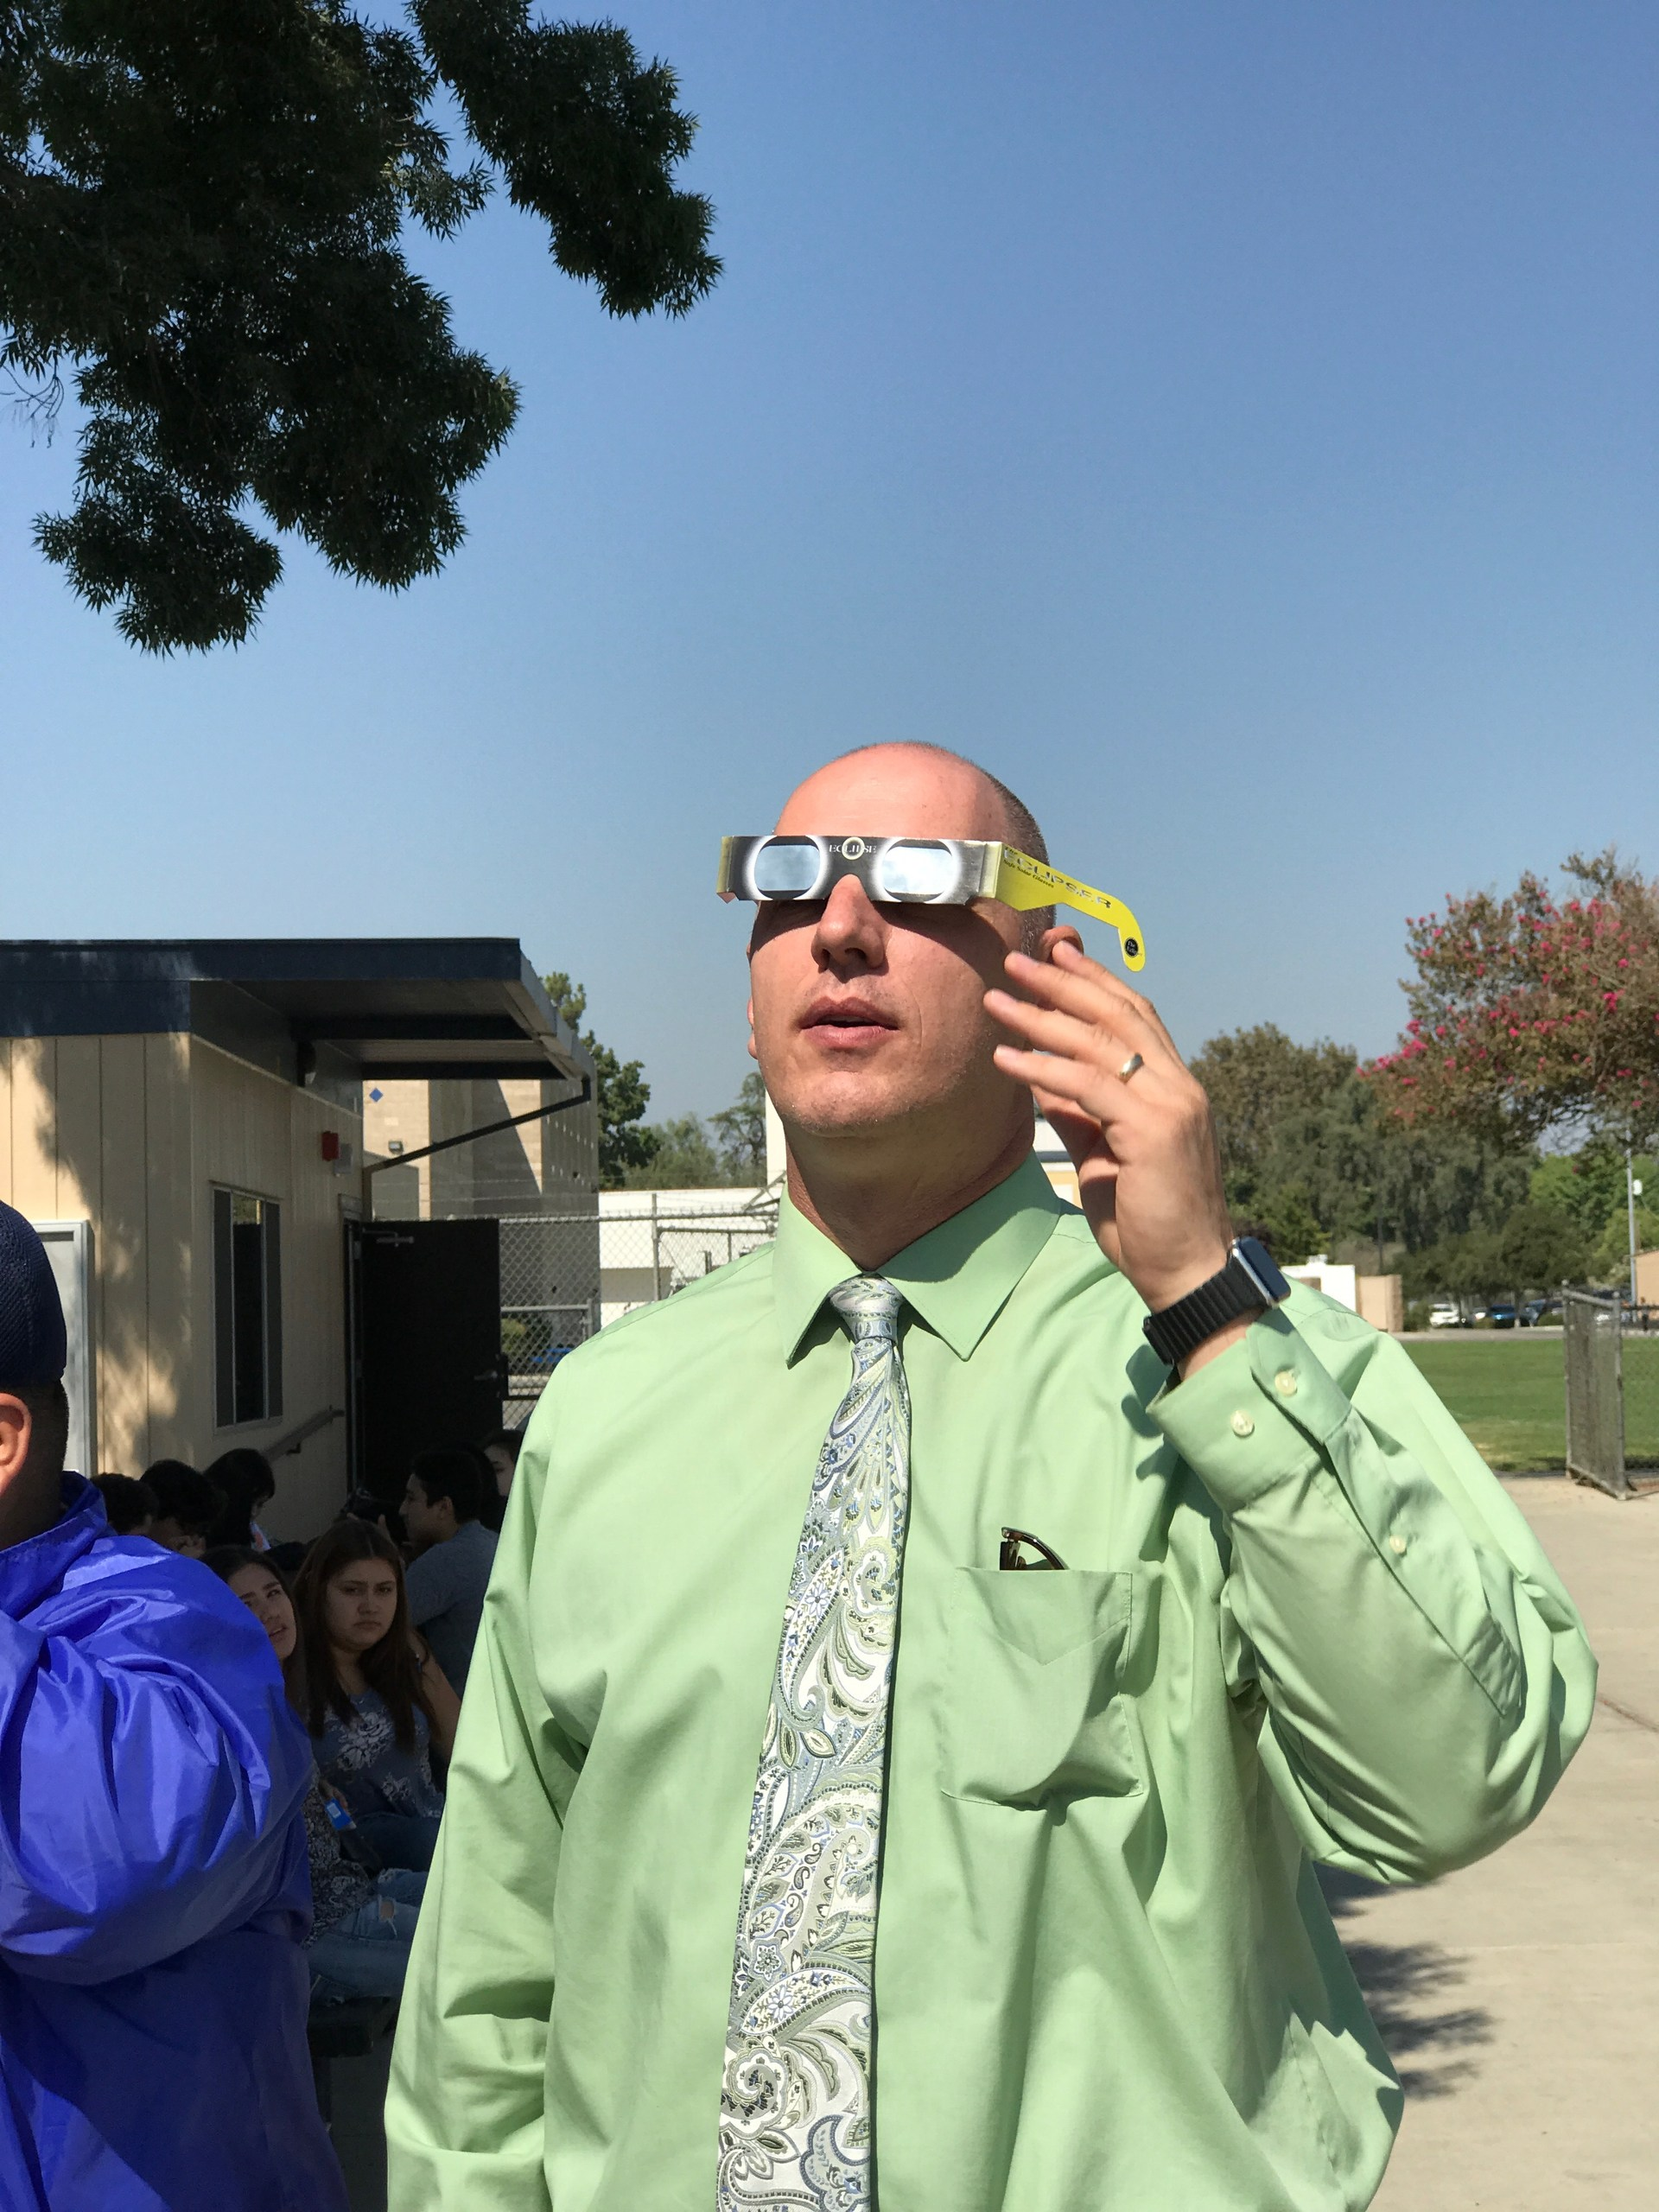 Mr. Johnson observe the solar eclipse